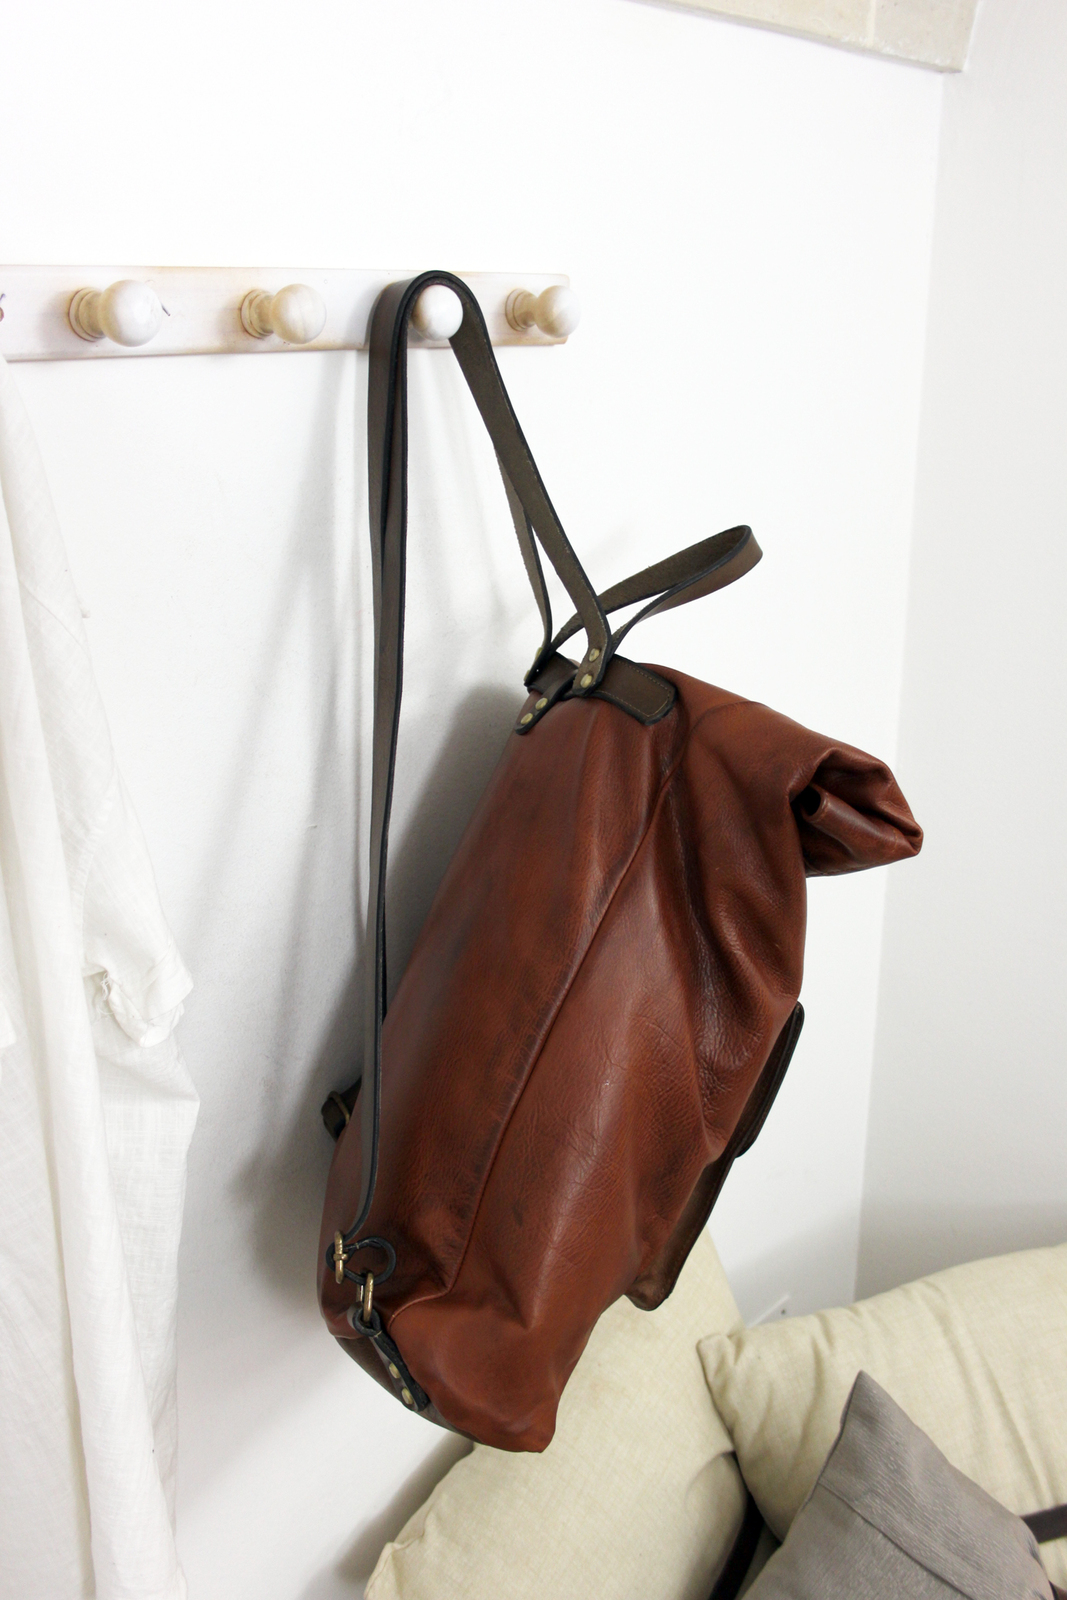 ROLL BACKPACK handmade leather & canvas backpack image 7